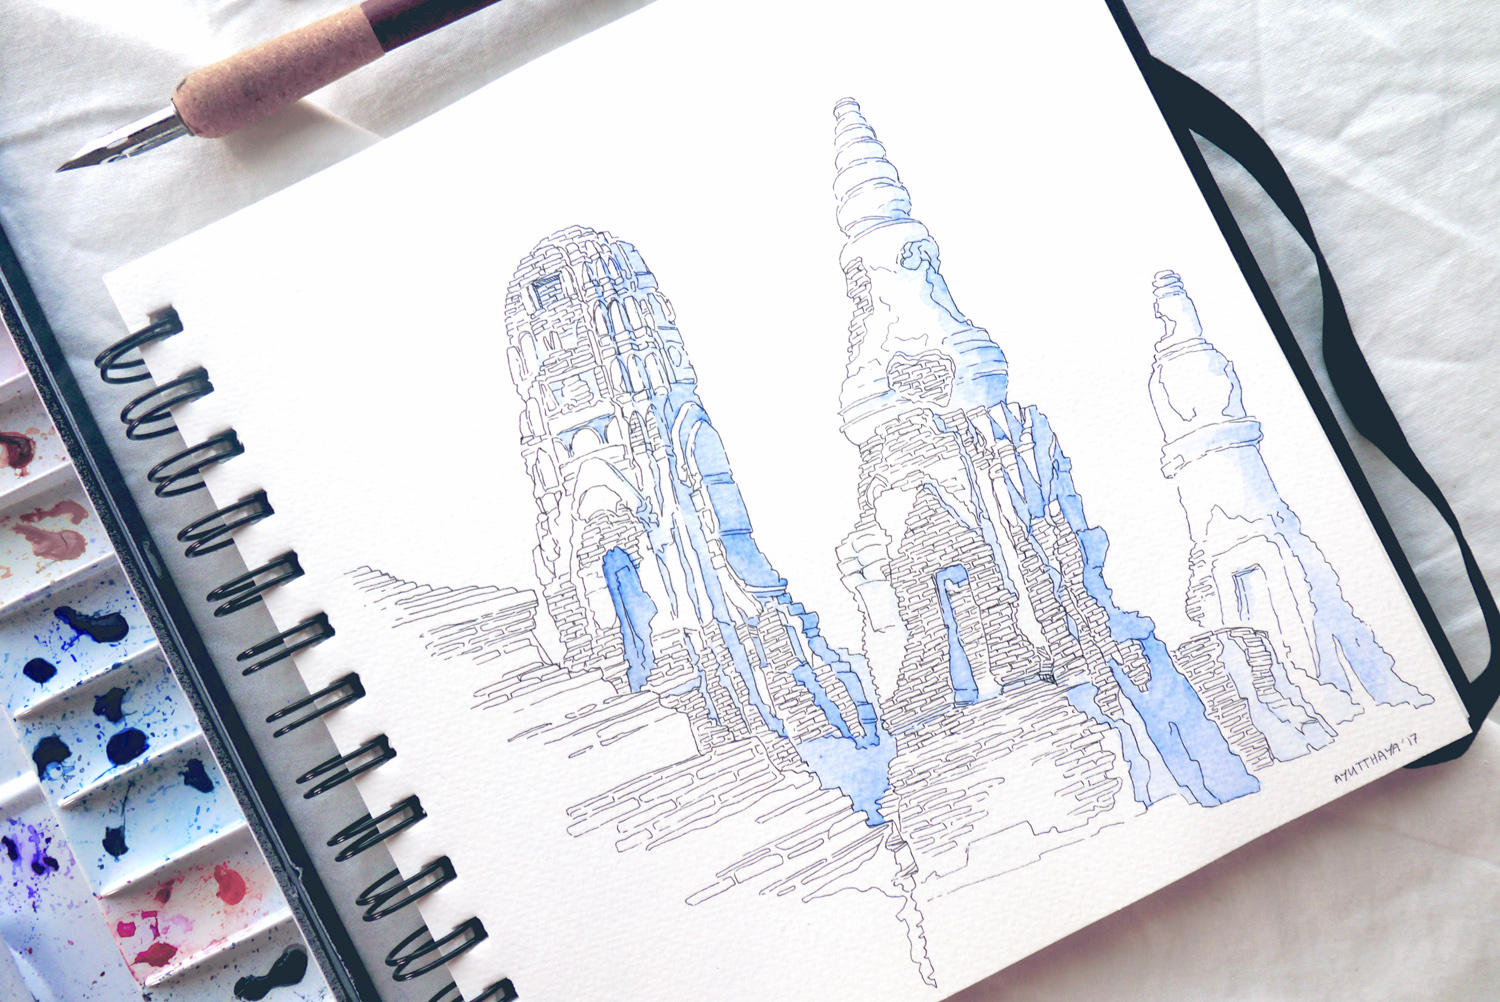 Temple Blues - The melancholic atmosphere of the Ayutthaya temple city ruins inspired this sketch. I painted and drew my impressions and memories from a trip to Thailand to have a creative, artsy diary for the future. I really like how the simple watercolor shading turned out for this line drawing of ruins.